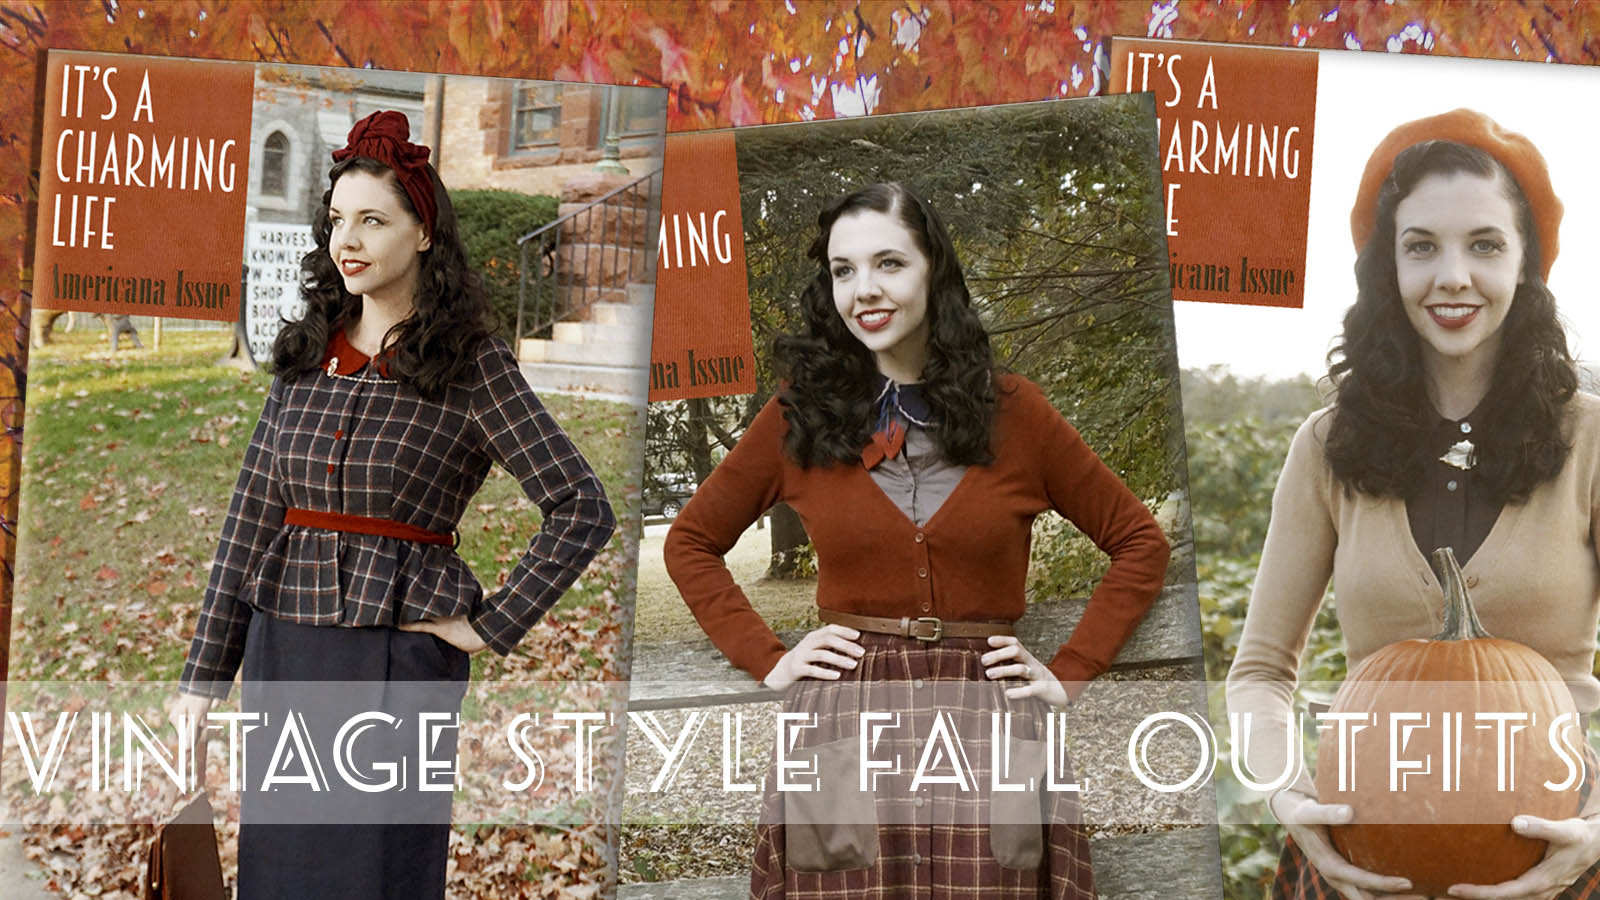 VINTAGE STYLE FALL FASHION   20 Classic Autumn Outfits   Welcome to ...